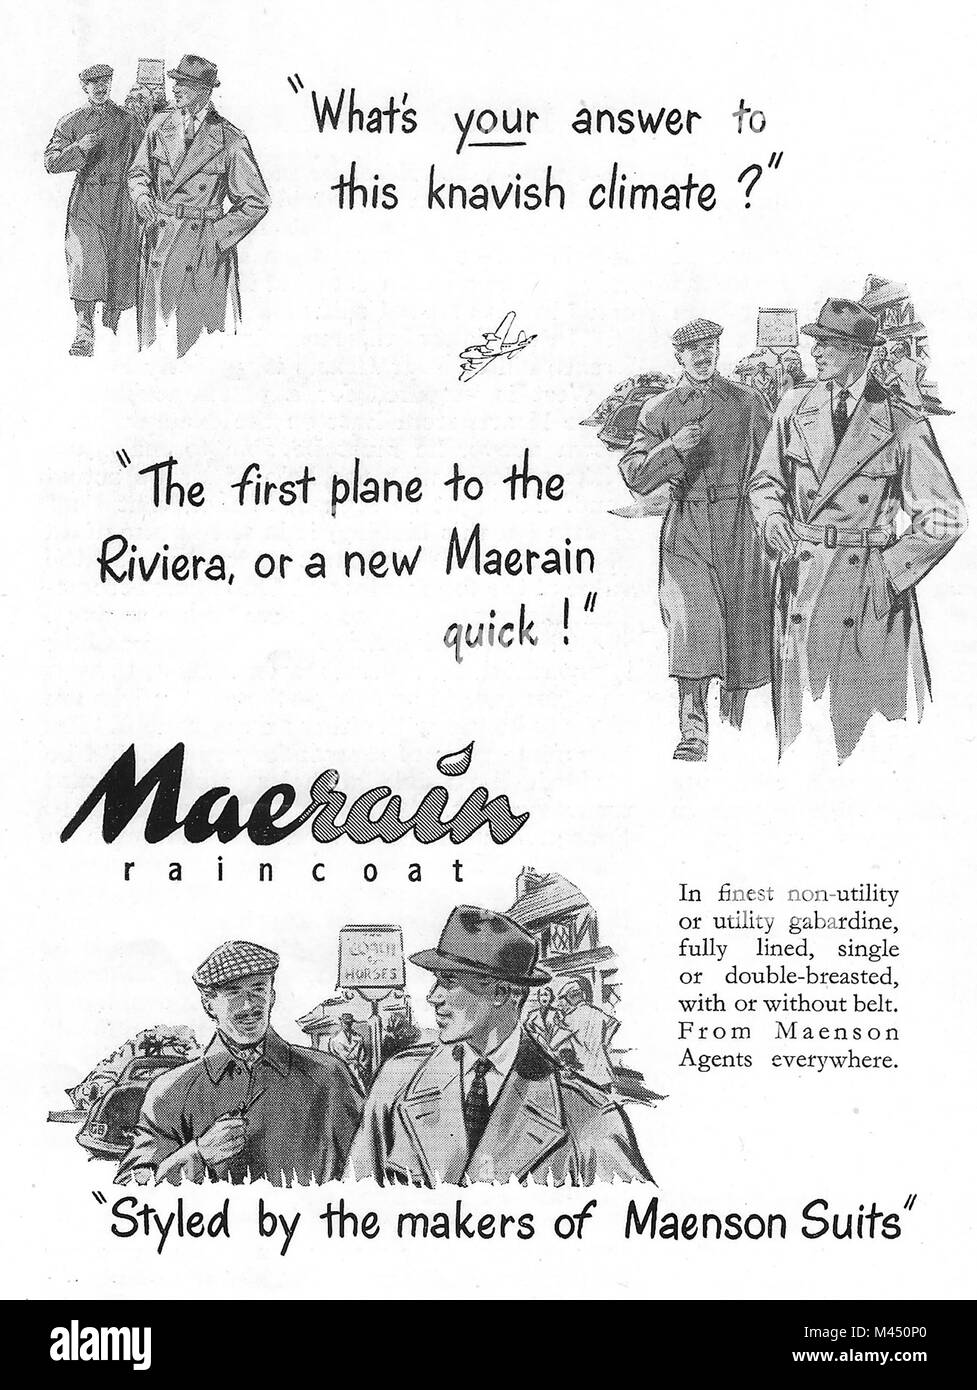 Maenson Maerain raincoat coat advert, advertising in Country Life magazine UK 1951 - Stock Image